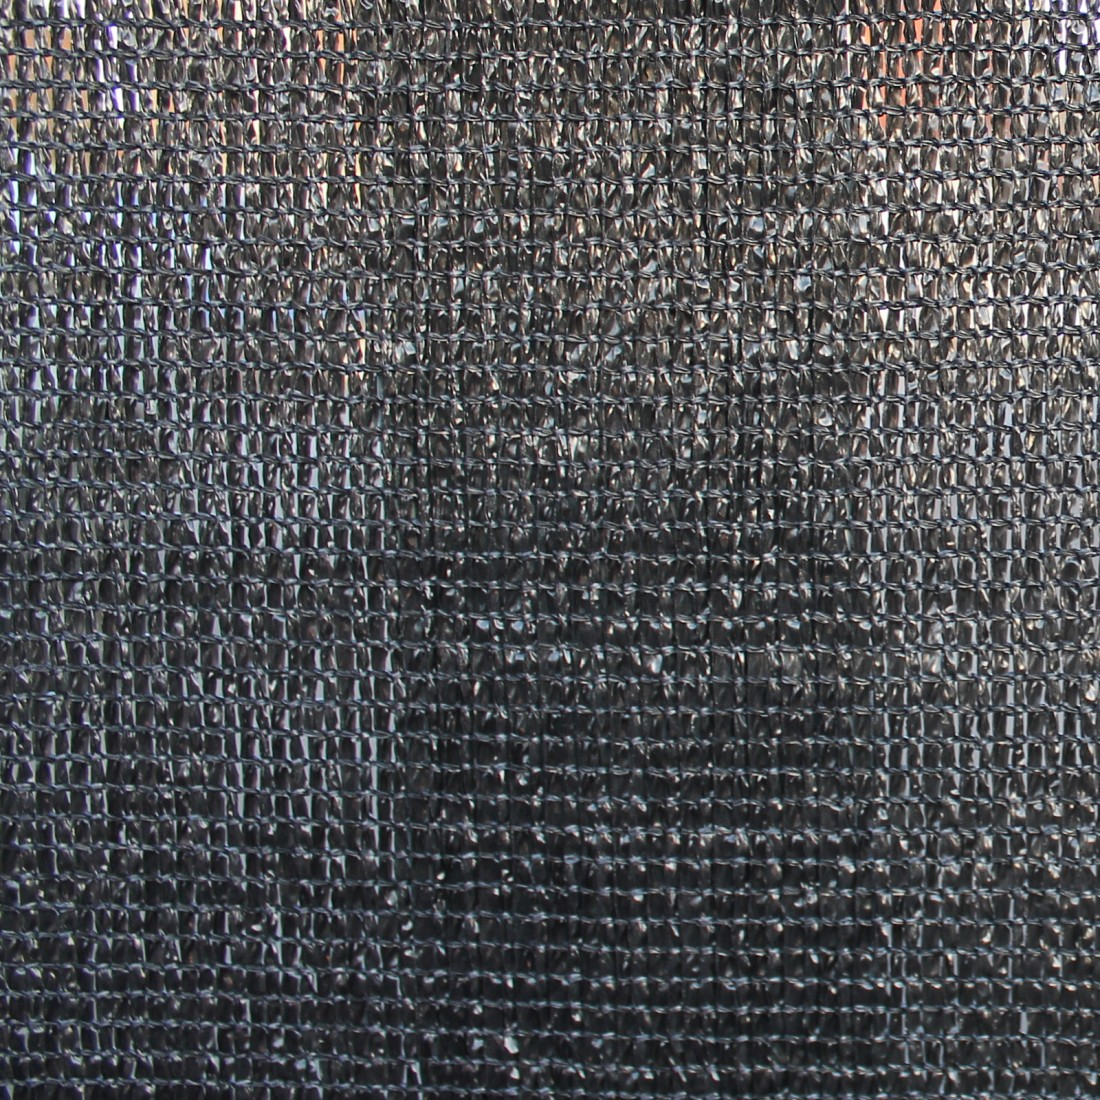 Stage Netting Fire Retardant 90 Shade Netting Also For